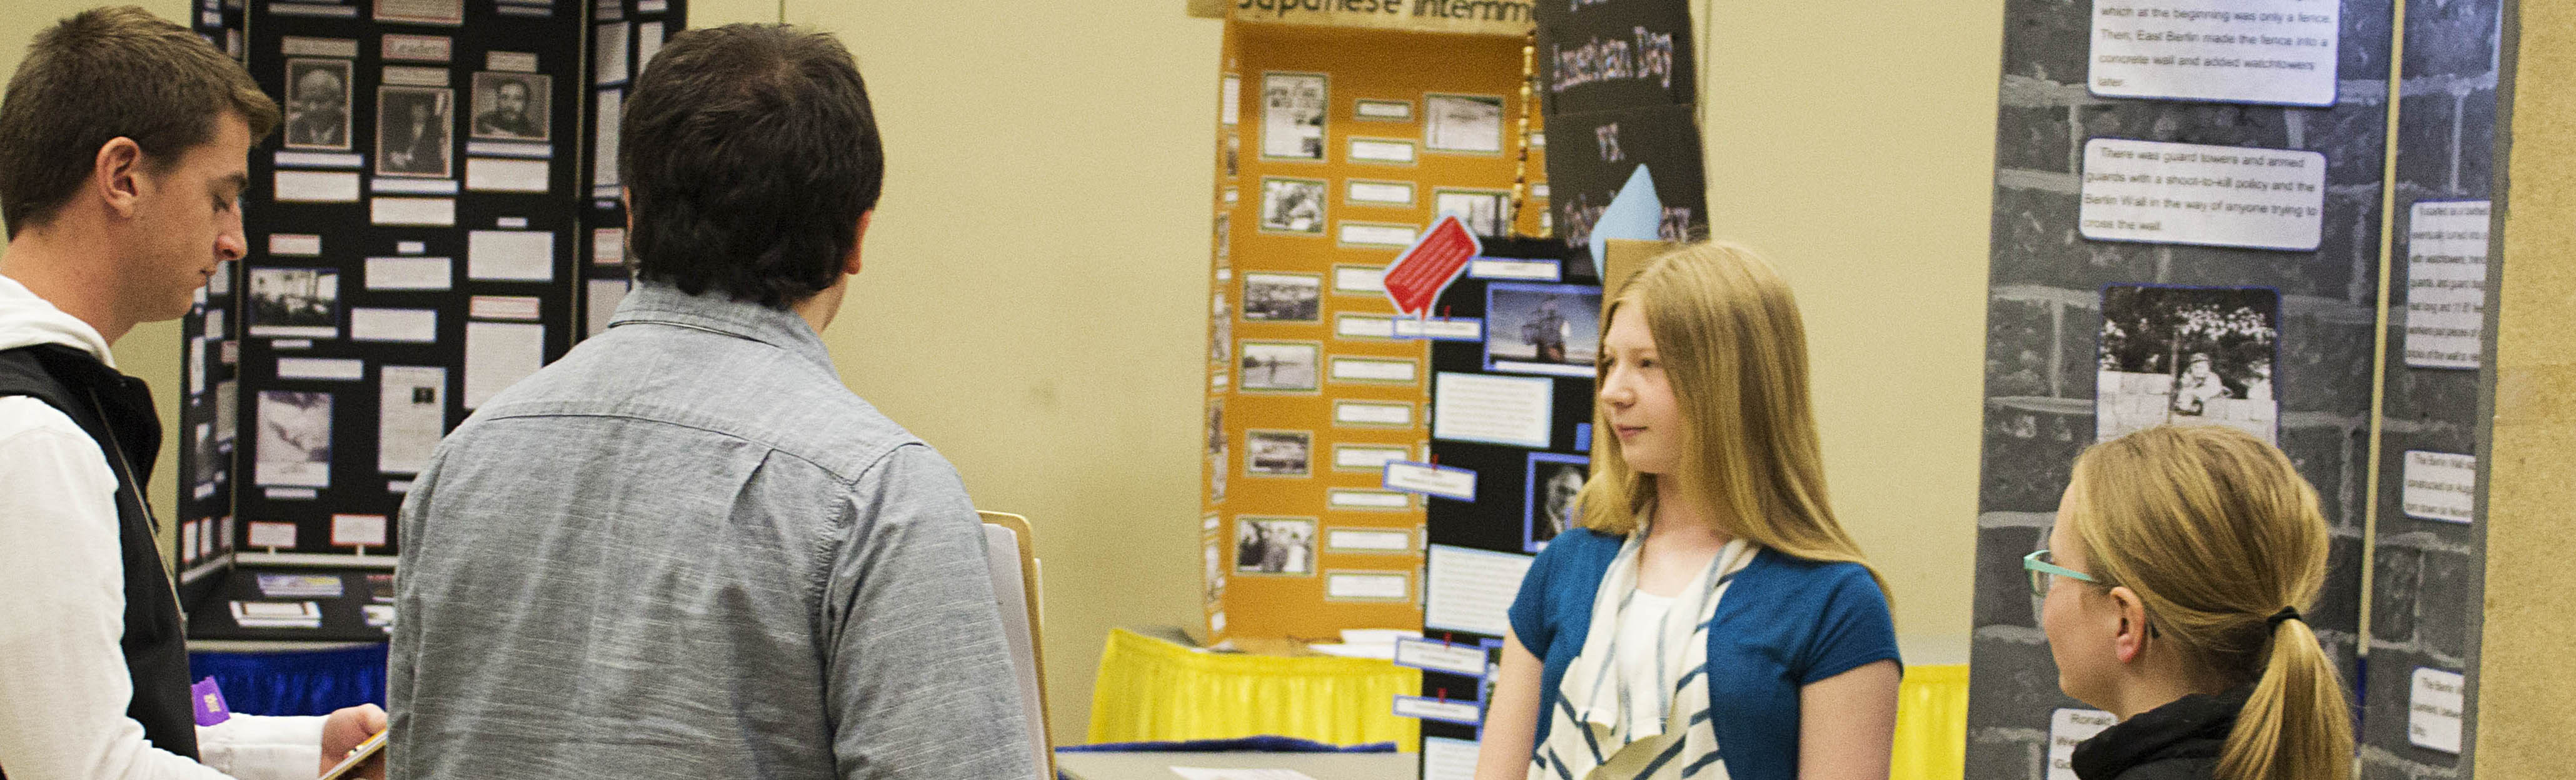 Two NHD in SD Judges interviewing two female students about their exhibit.